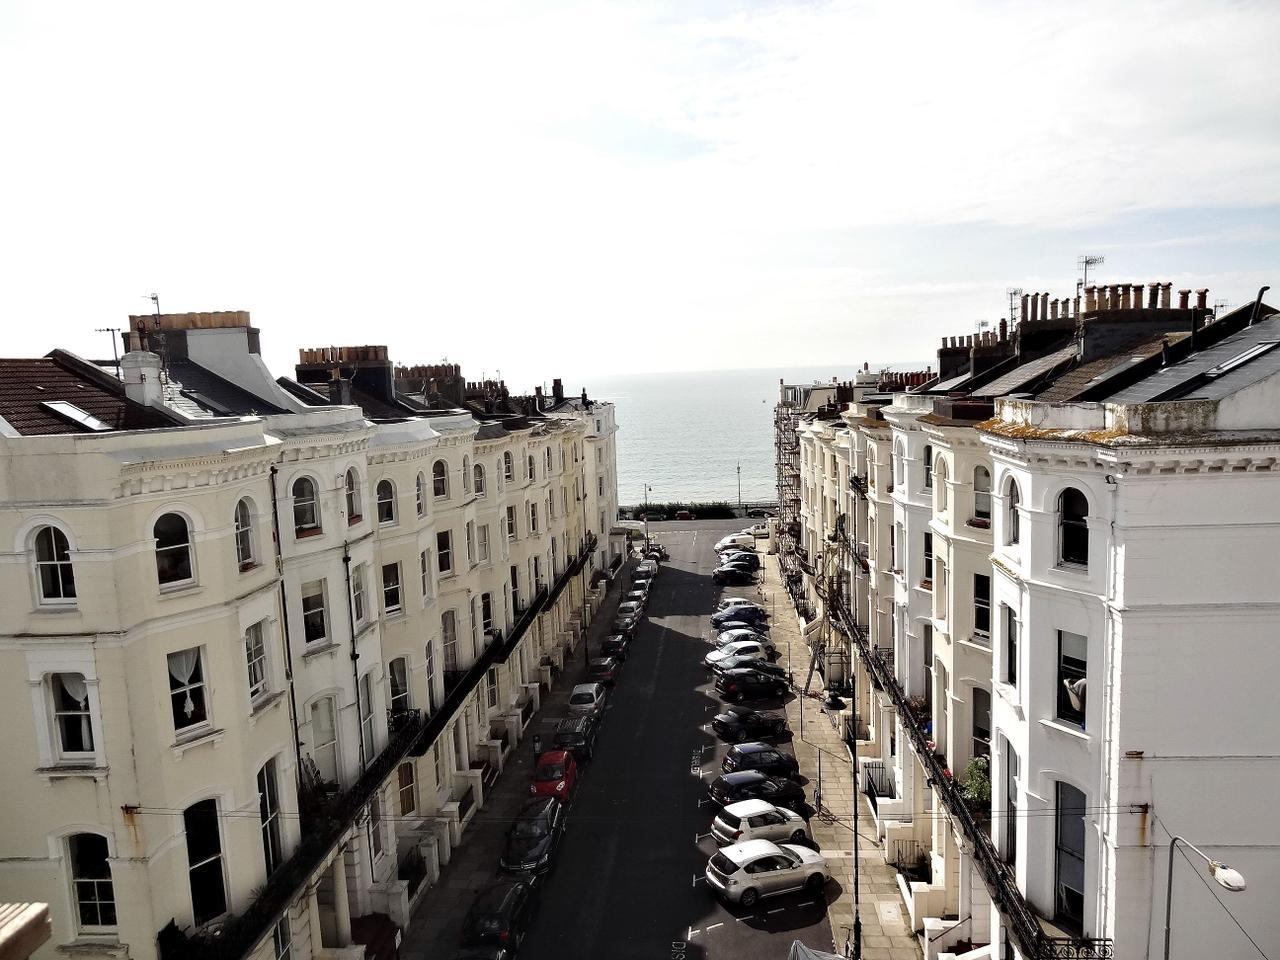 Chesham Penthouse, Brighton & Hove Images - 14